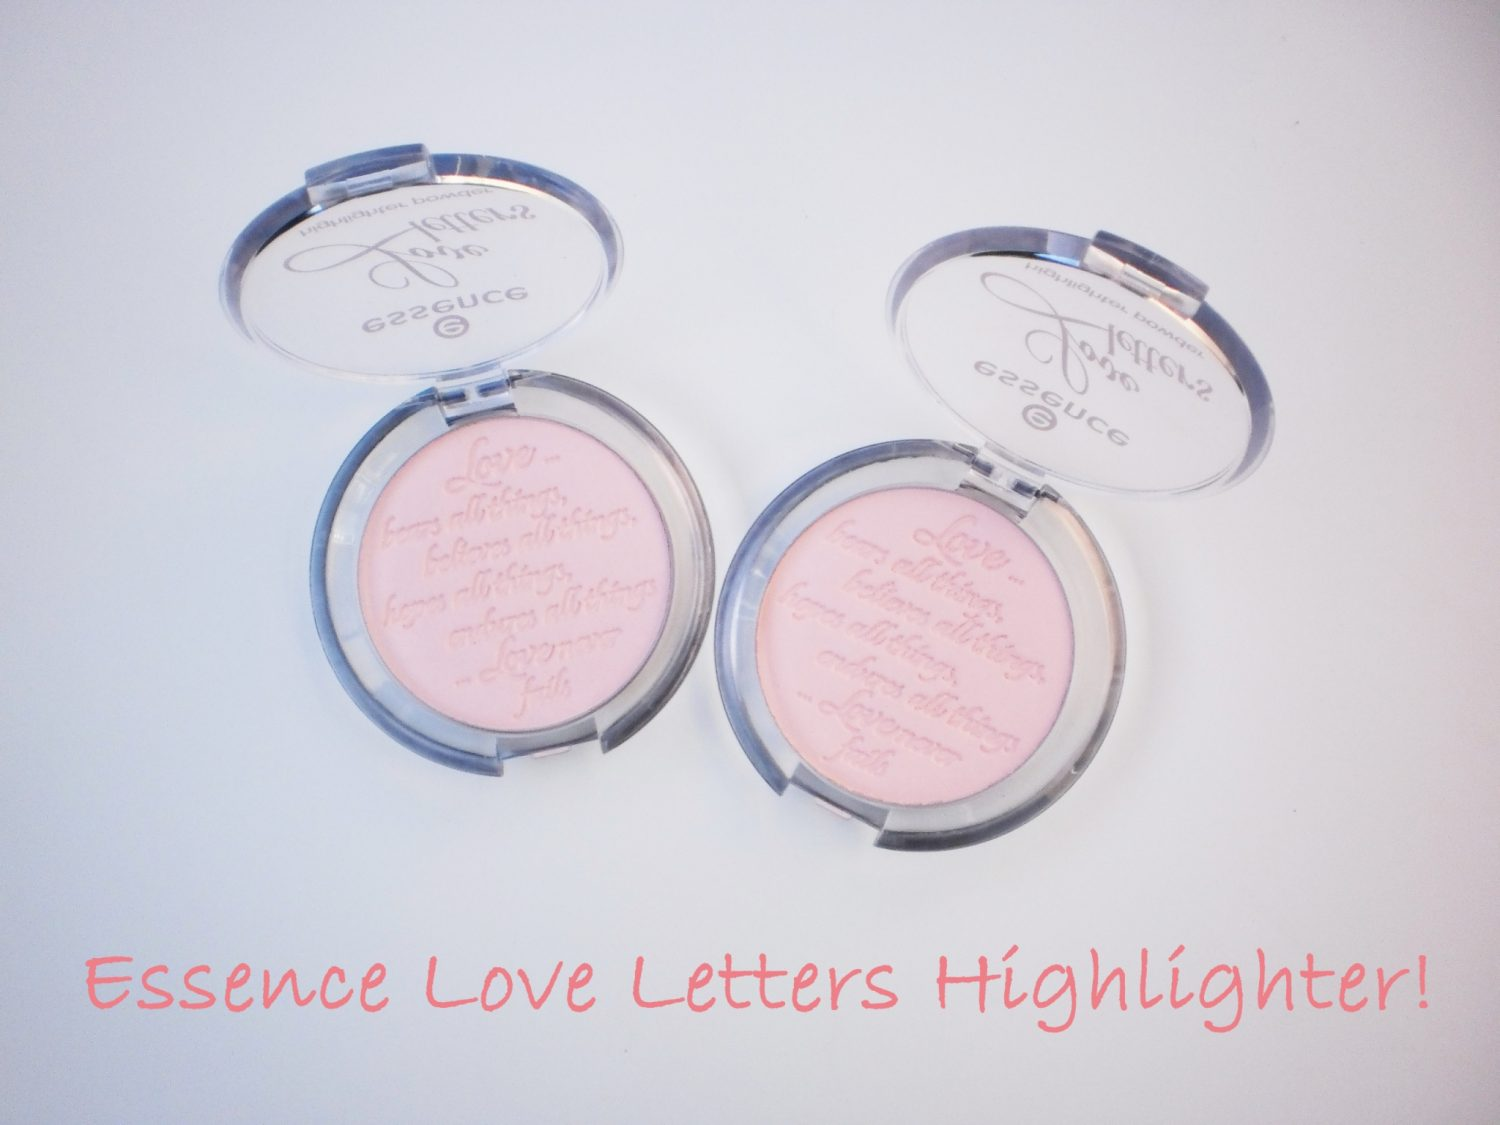 Review: Essence Love Letters Highlighter